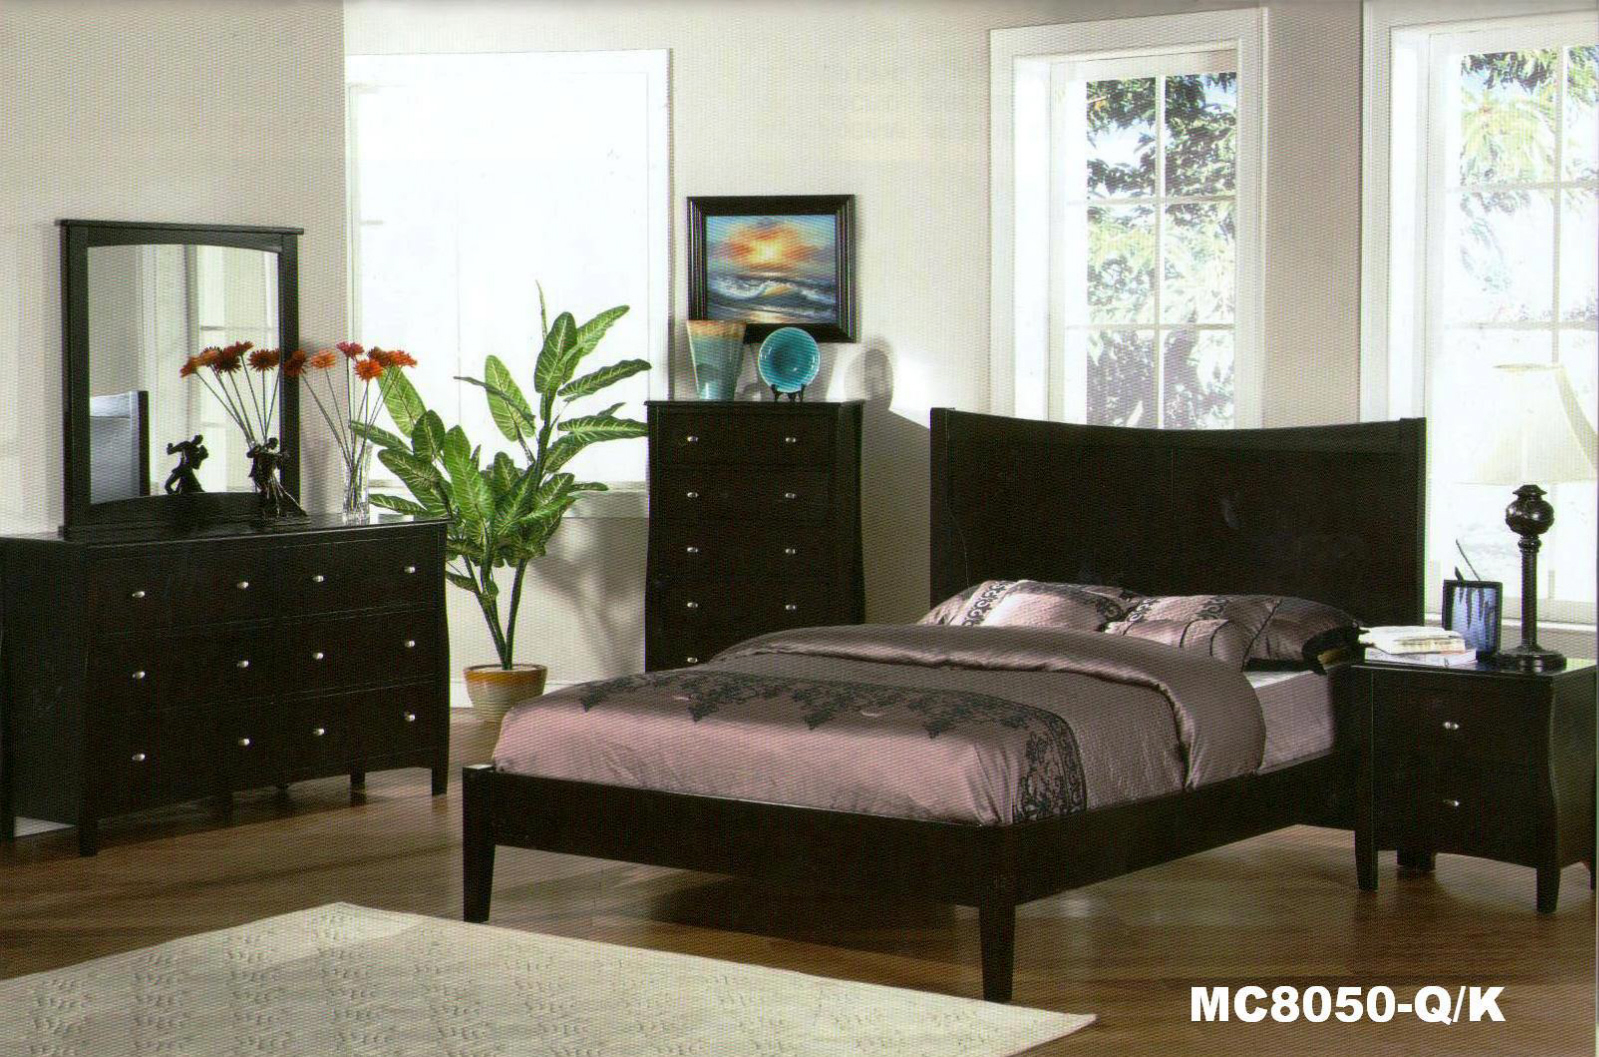 J&j Furniture | Kincaid Furniture | Nebraska Furniture Mart Kansas City